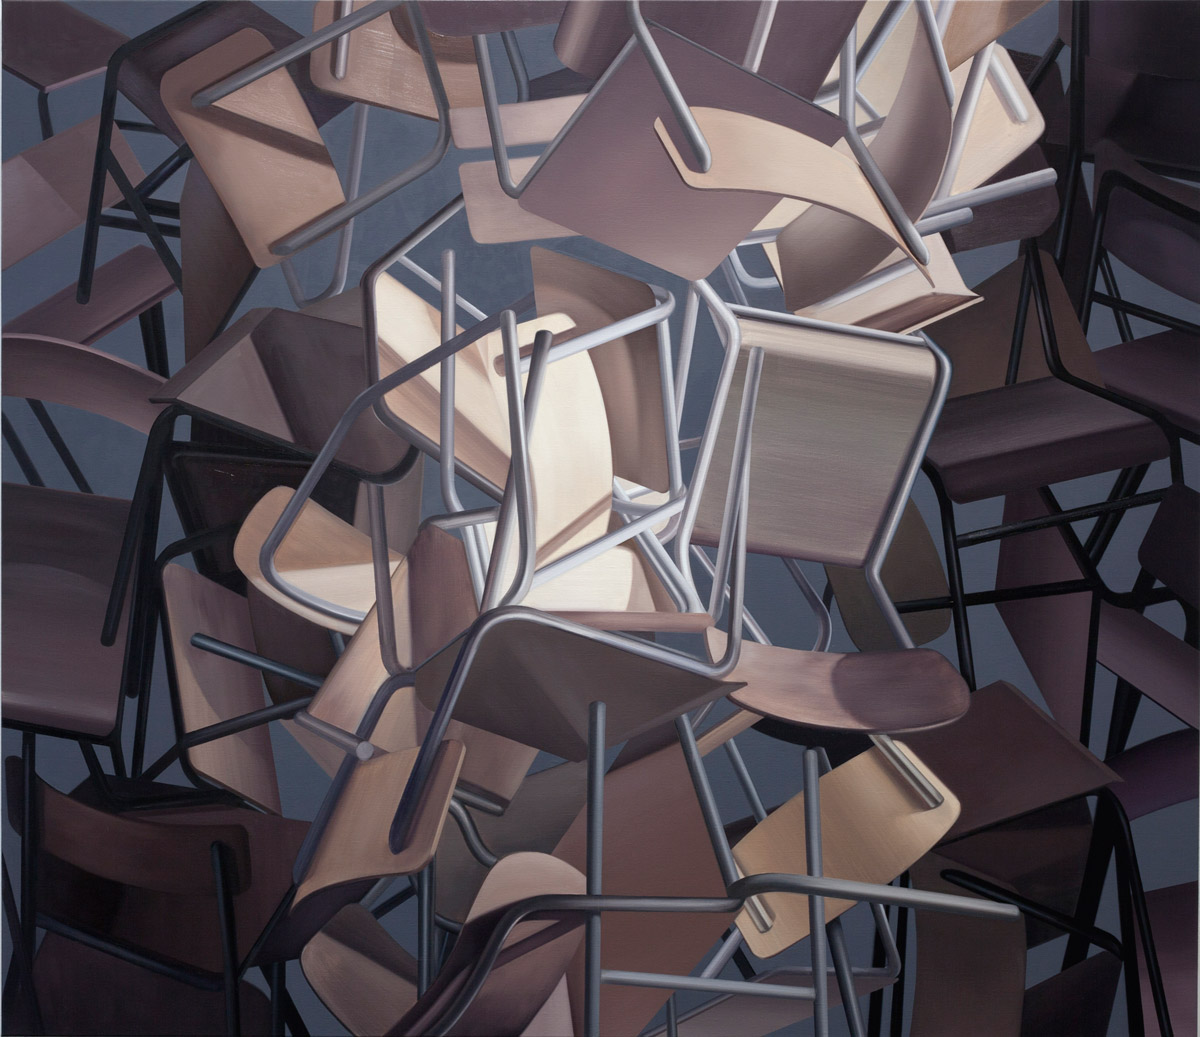 Carl Hammoud